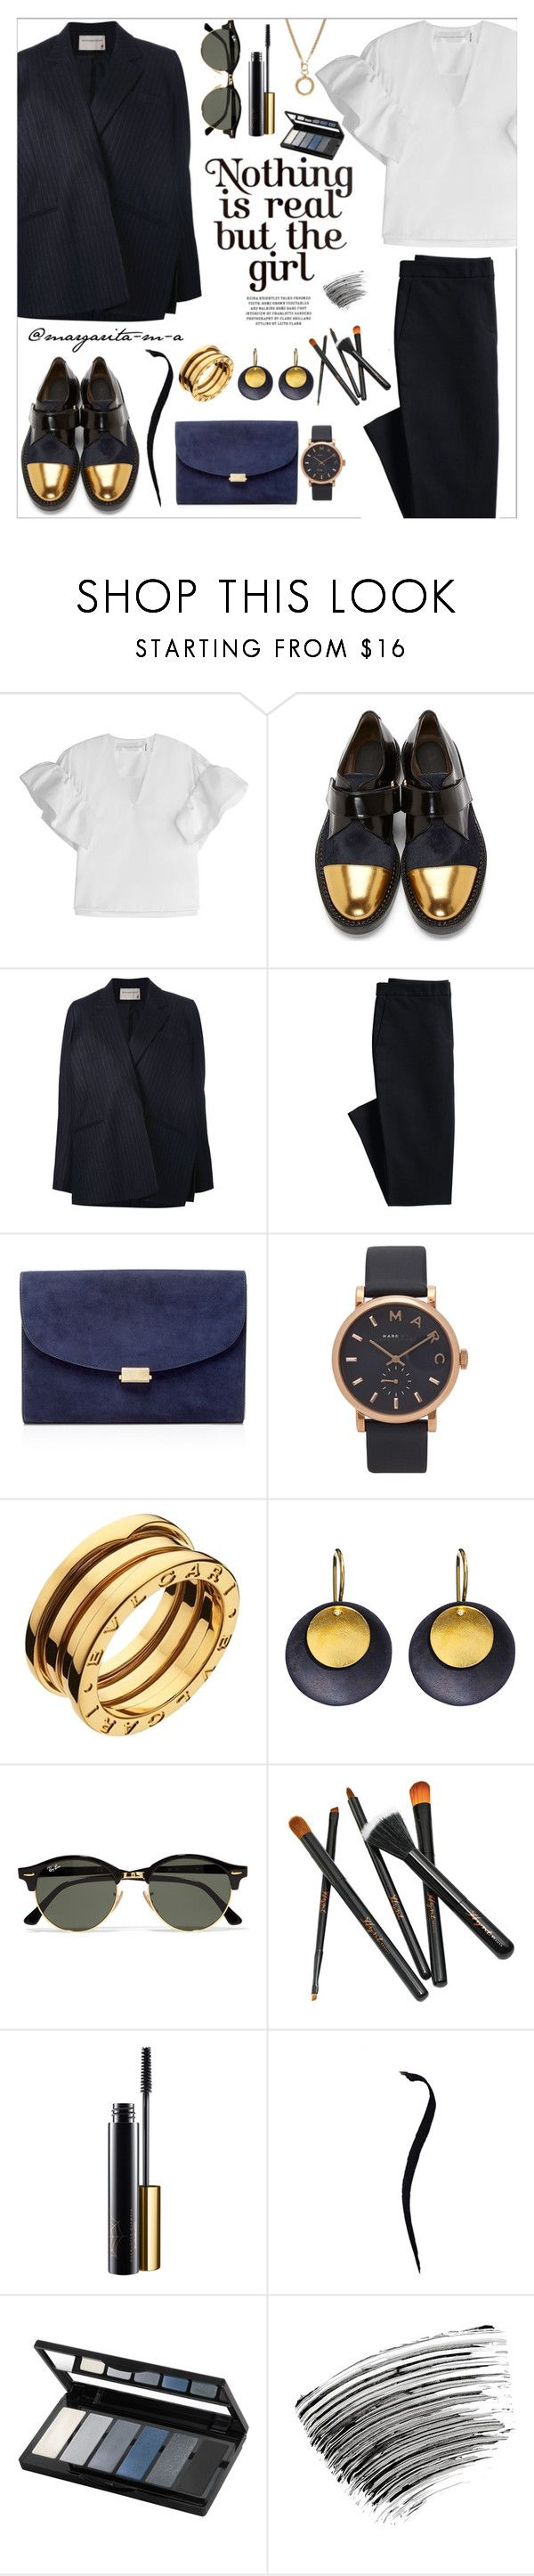 """..."" by margarita-m-a ❤ liked on Polyvore featuring Victoria, Victoria Beckham, Marni, Maison Rabih Kayrouz, Canvas by Lands' End, Mansur Gavriel, Marc Jacobs, Bulgari, Hissia, Ray-Ban and Isadora"